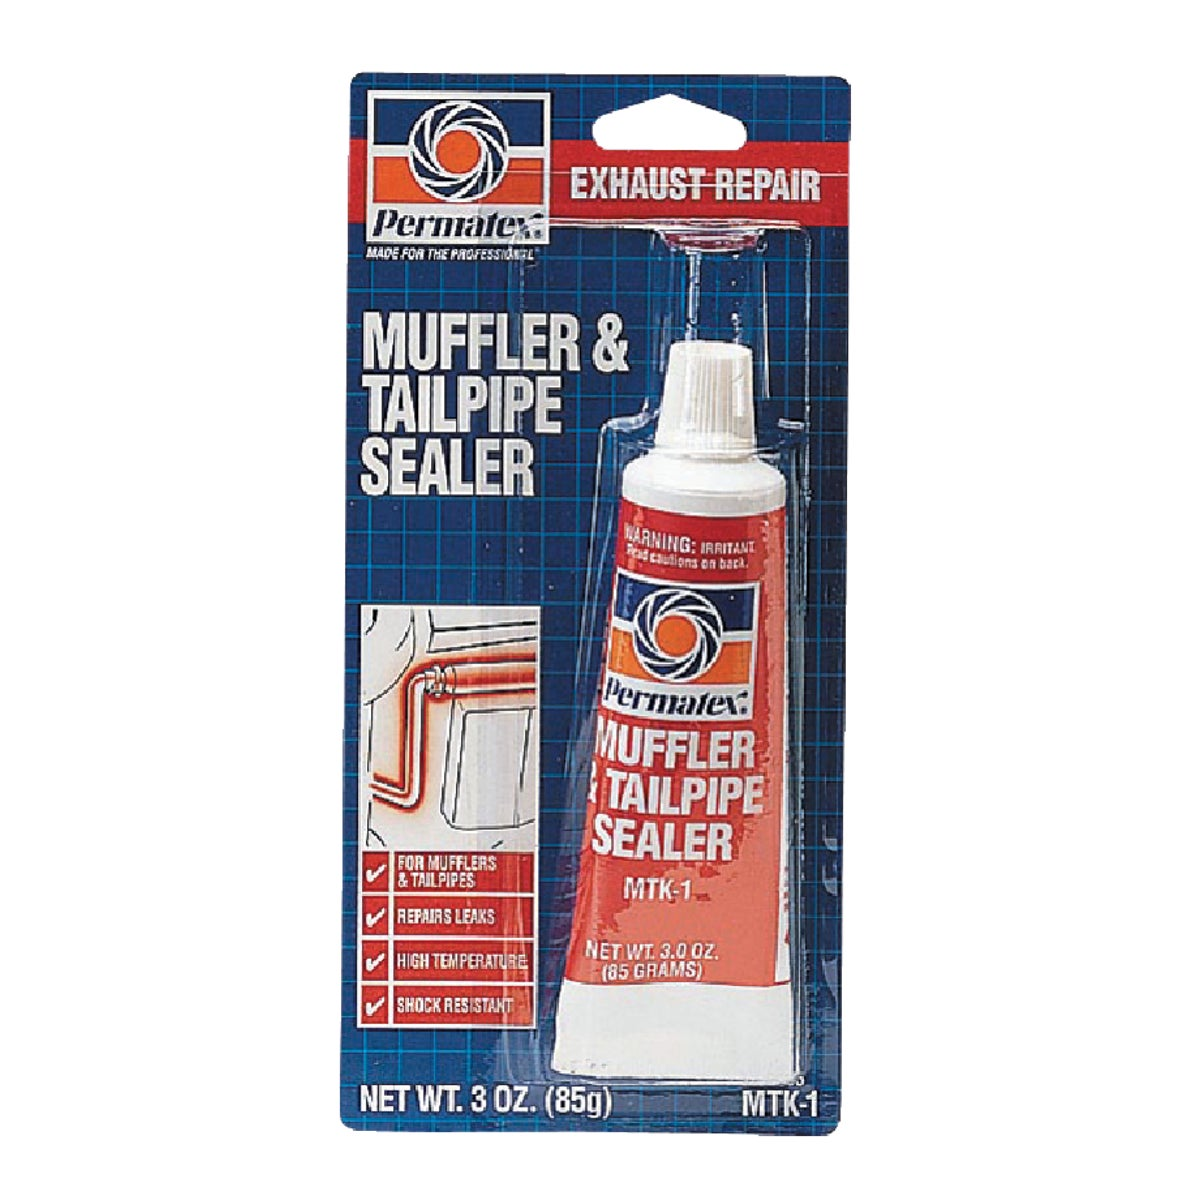 3OZ MUFFLER SEALER - 80335 by Itw Global Brands